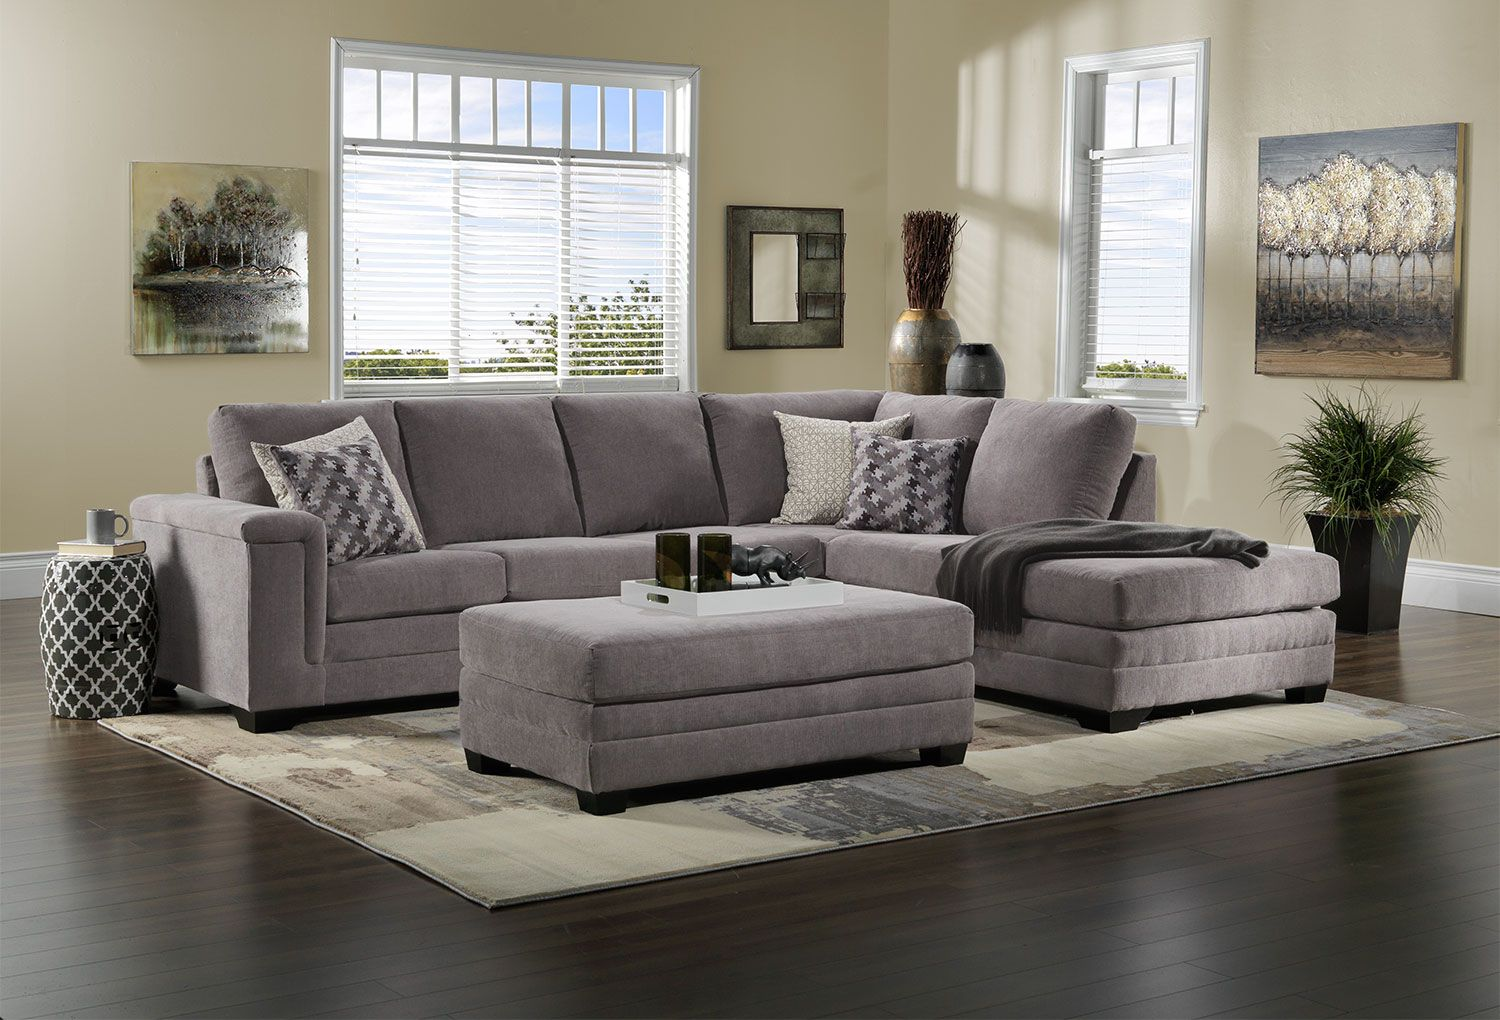 Terrific Light Touch The Leighton Sectional Will Transform Your Lamtechconsult Wood Chair Design Ideas Lamtechconsultcom